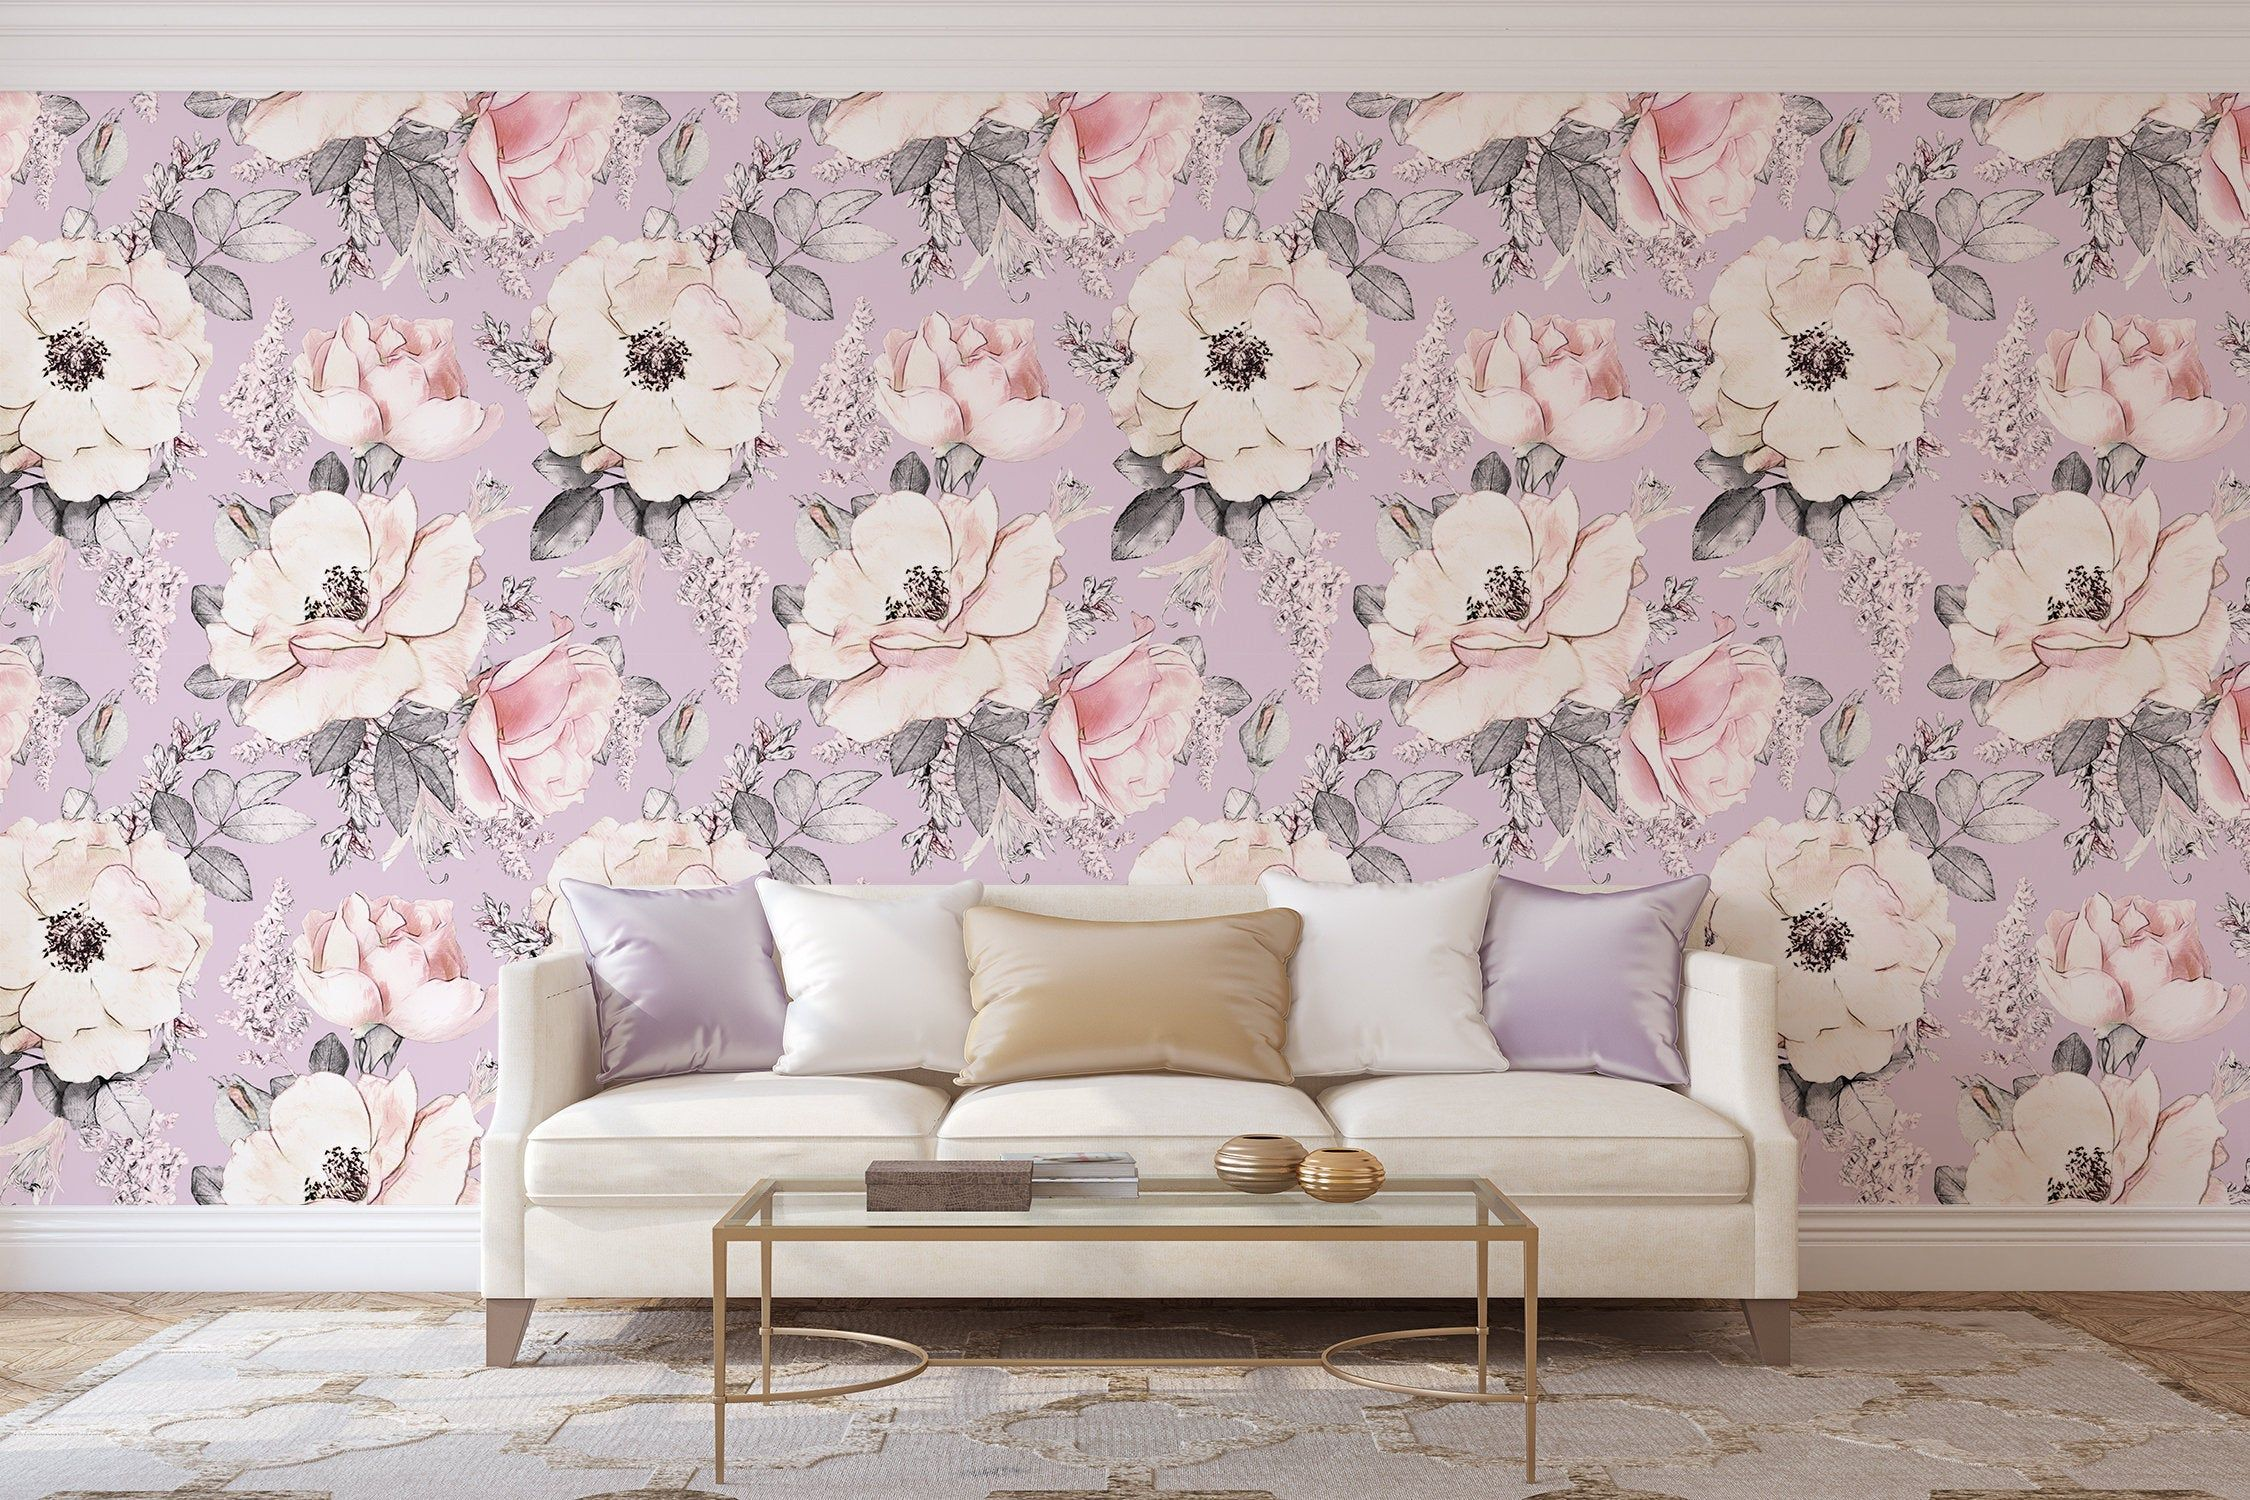 Removable Peel And Stick Wallpaper Purple Watercolor Floral Etsy Nursery Wallpaper Peel And Stick Wallpaper Home Wallpaper